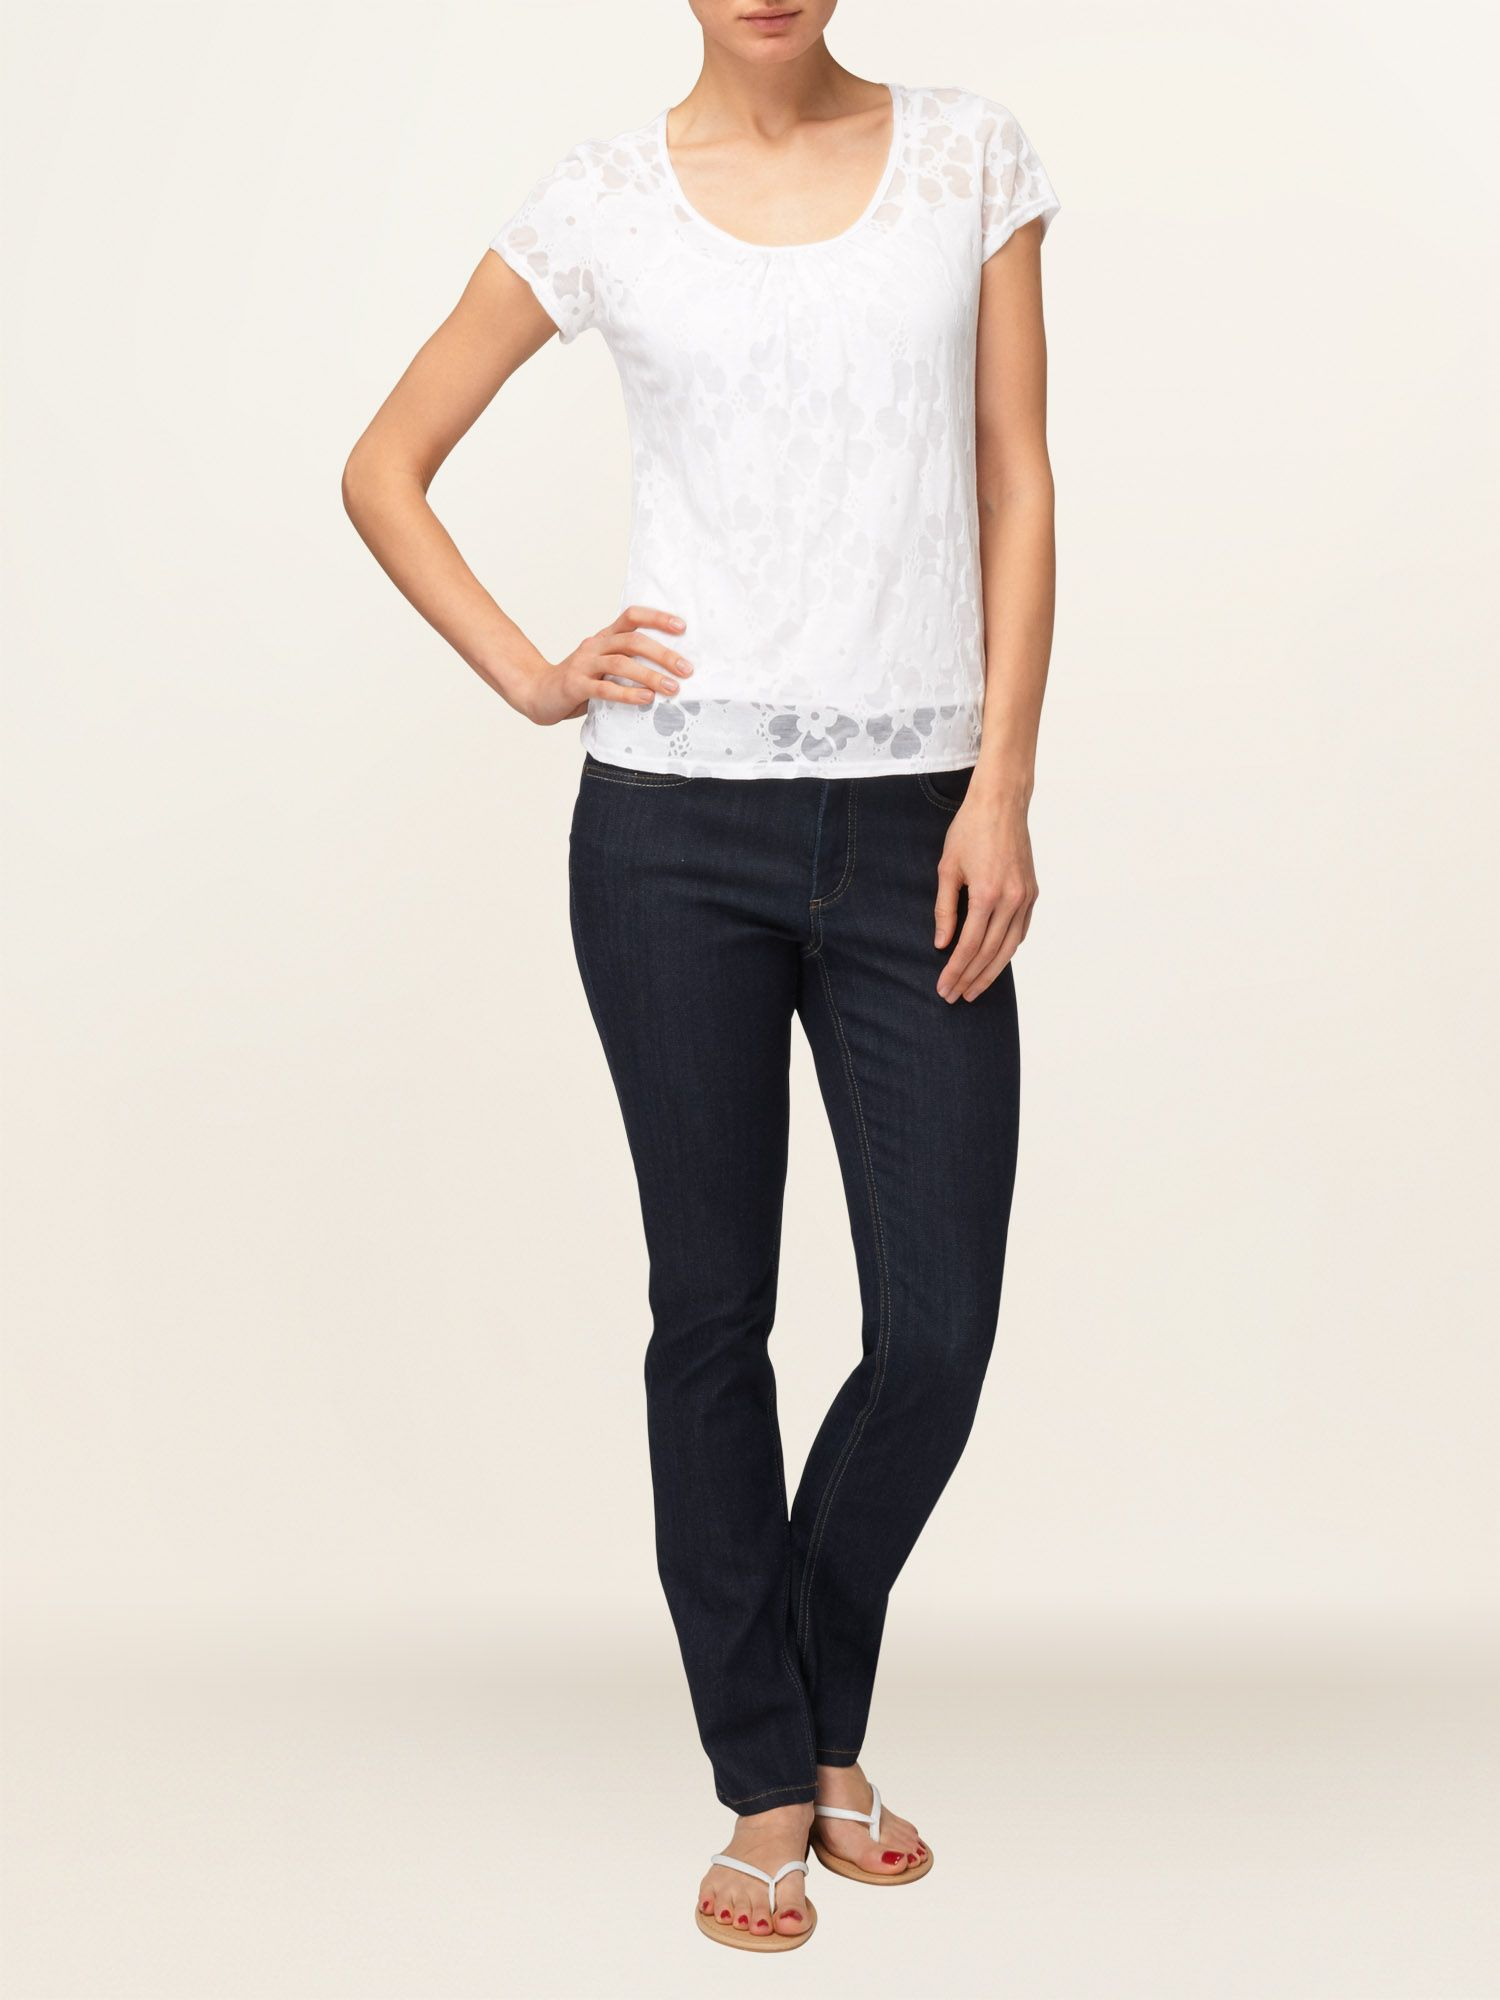 Burnout flower top